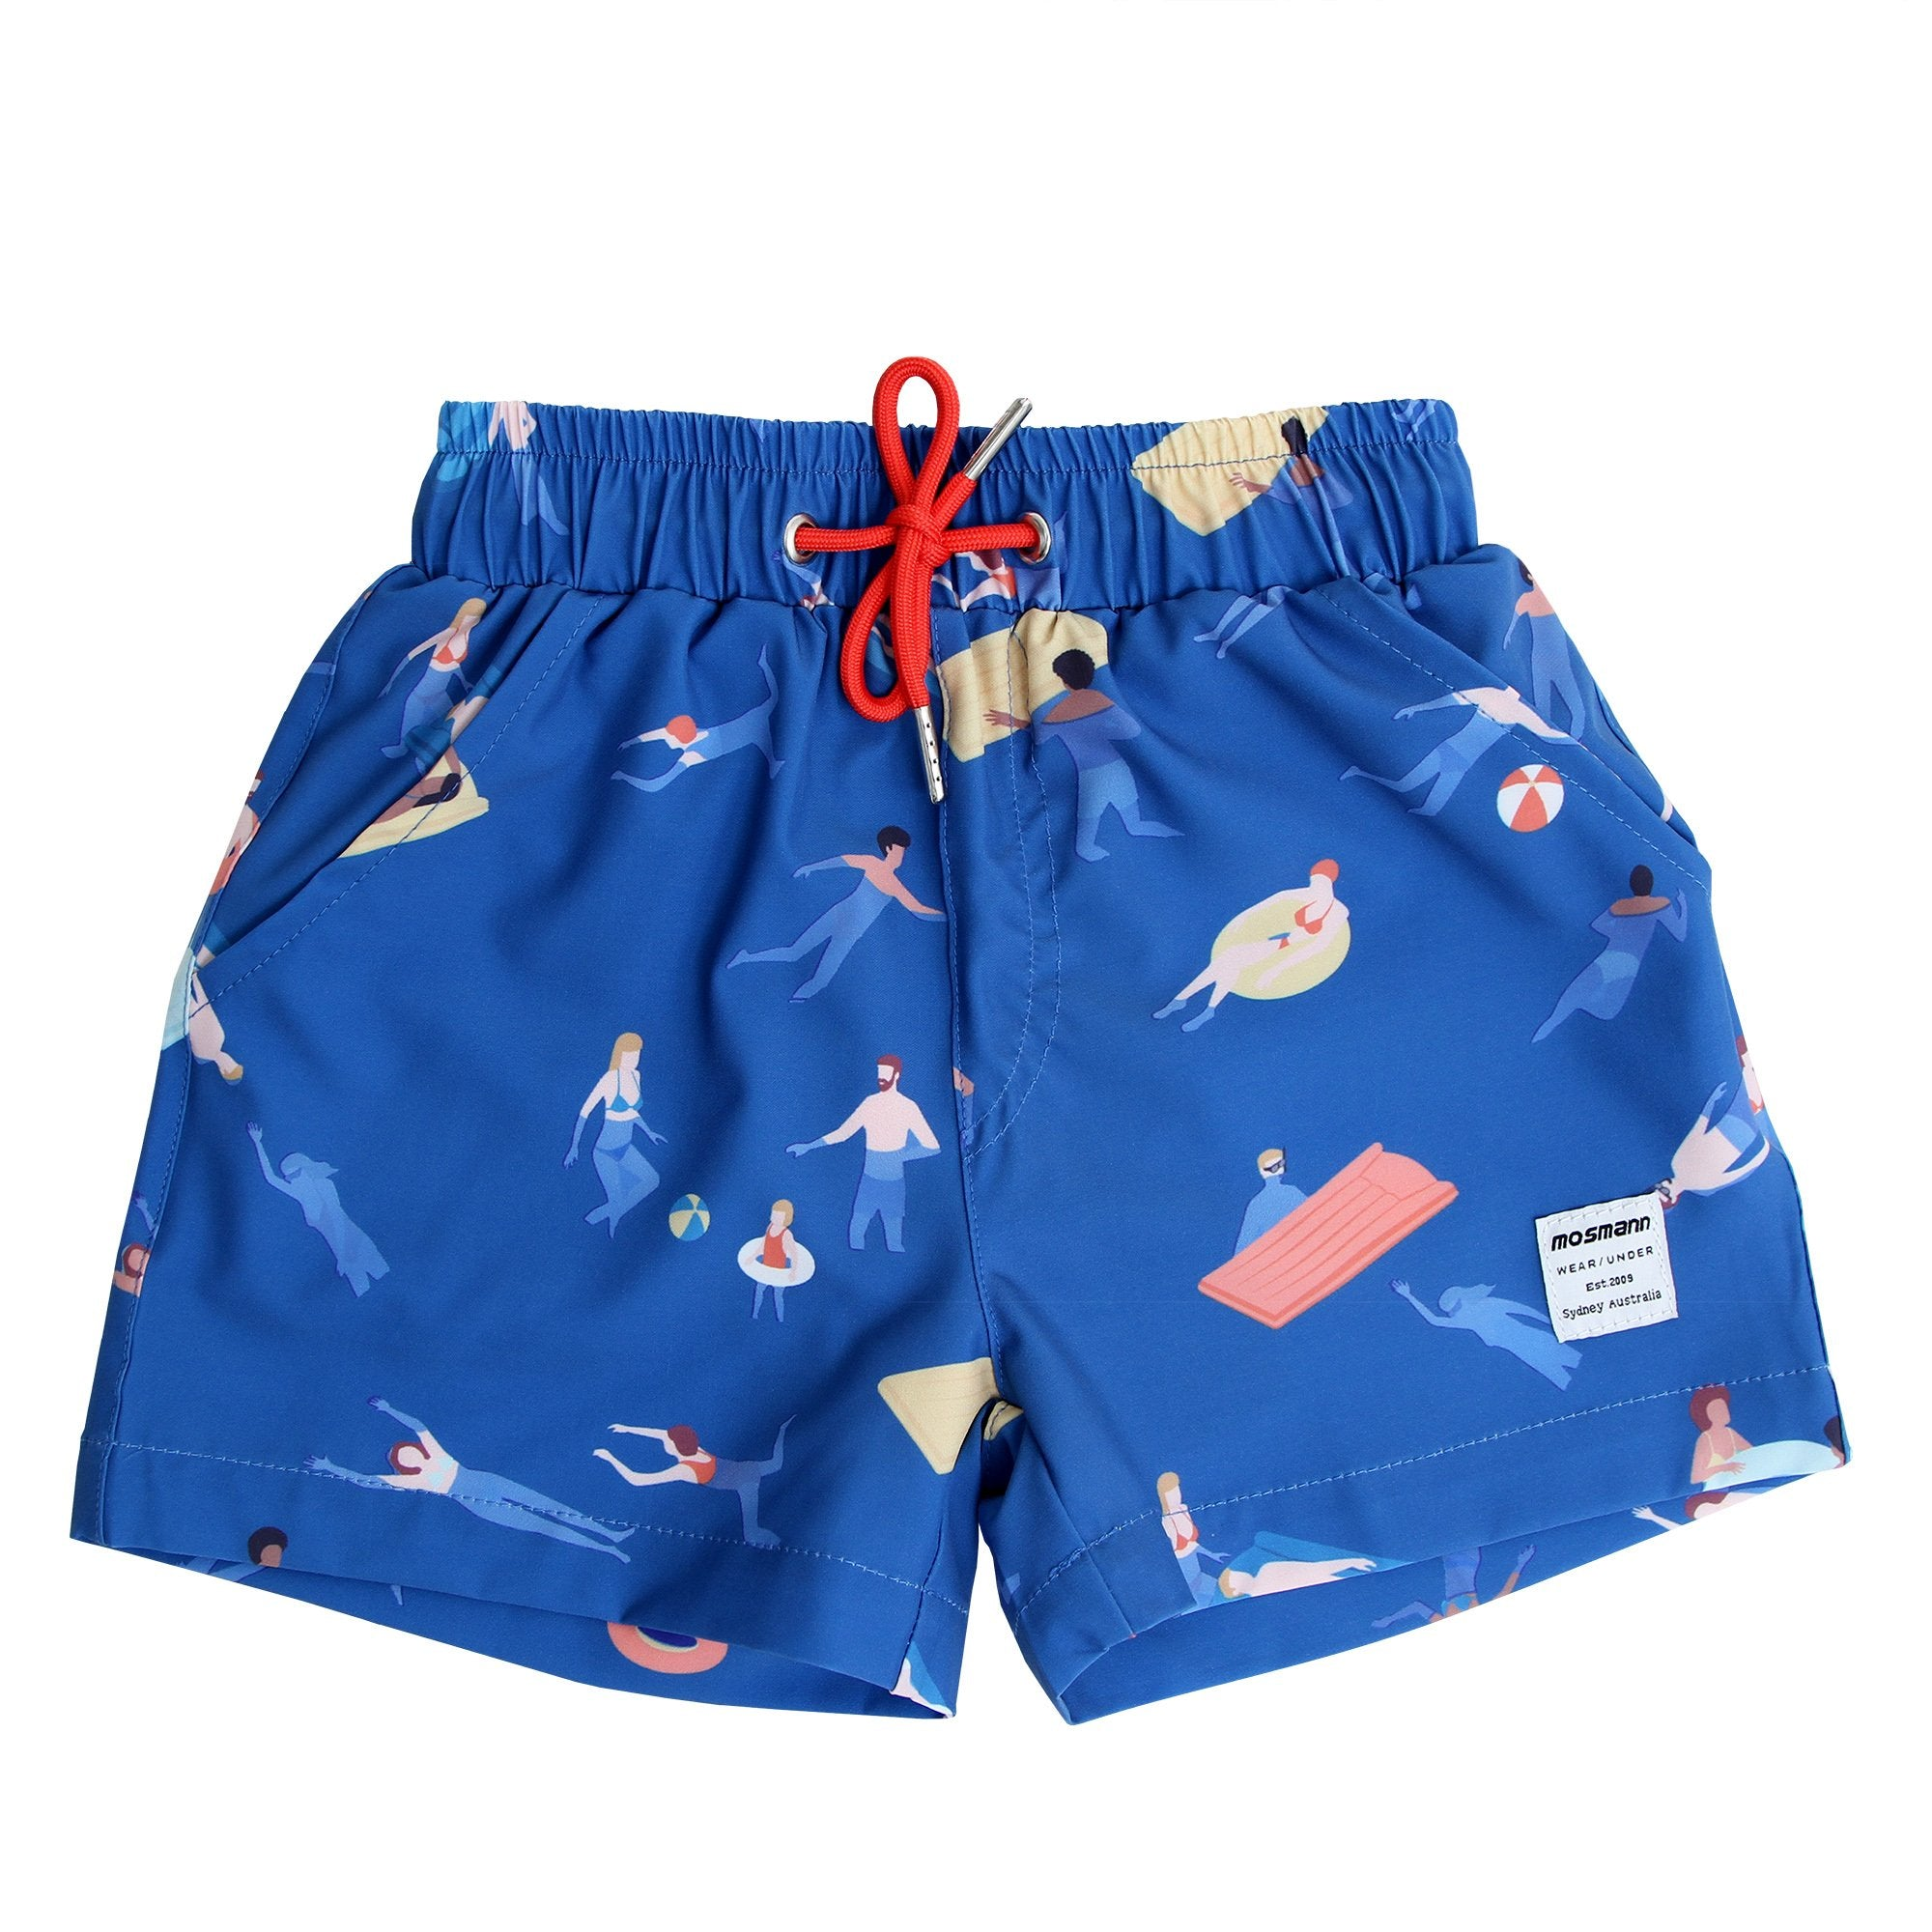 Boys%20swim%20shorts%20front%20view.jpg